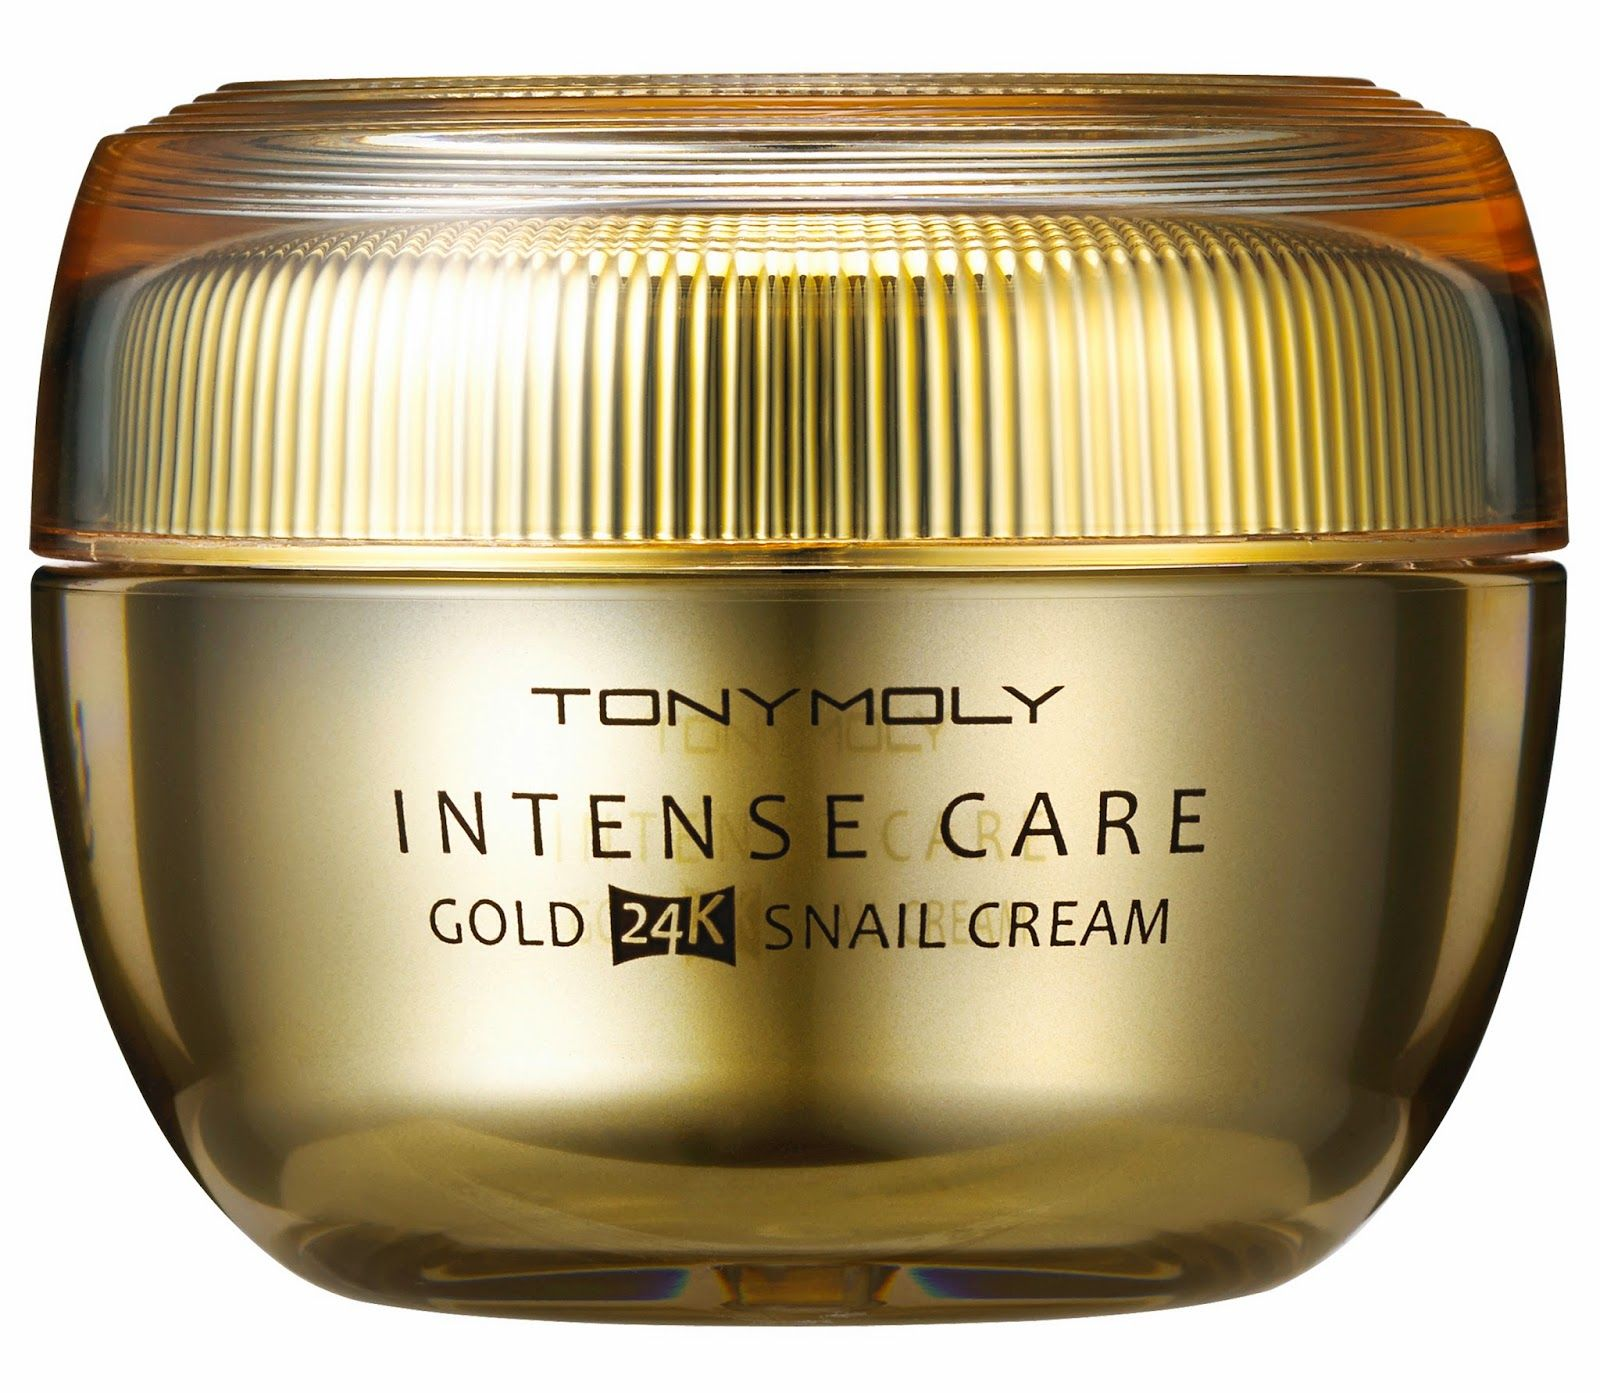 Review Tony Moly Intense Care Gold Snail Cream Snail Cream Face Products Skincare Tony Moly